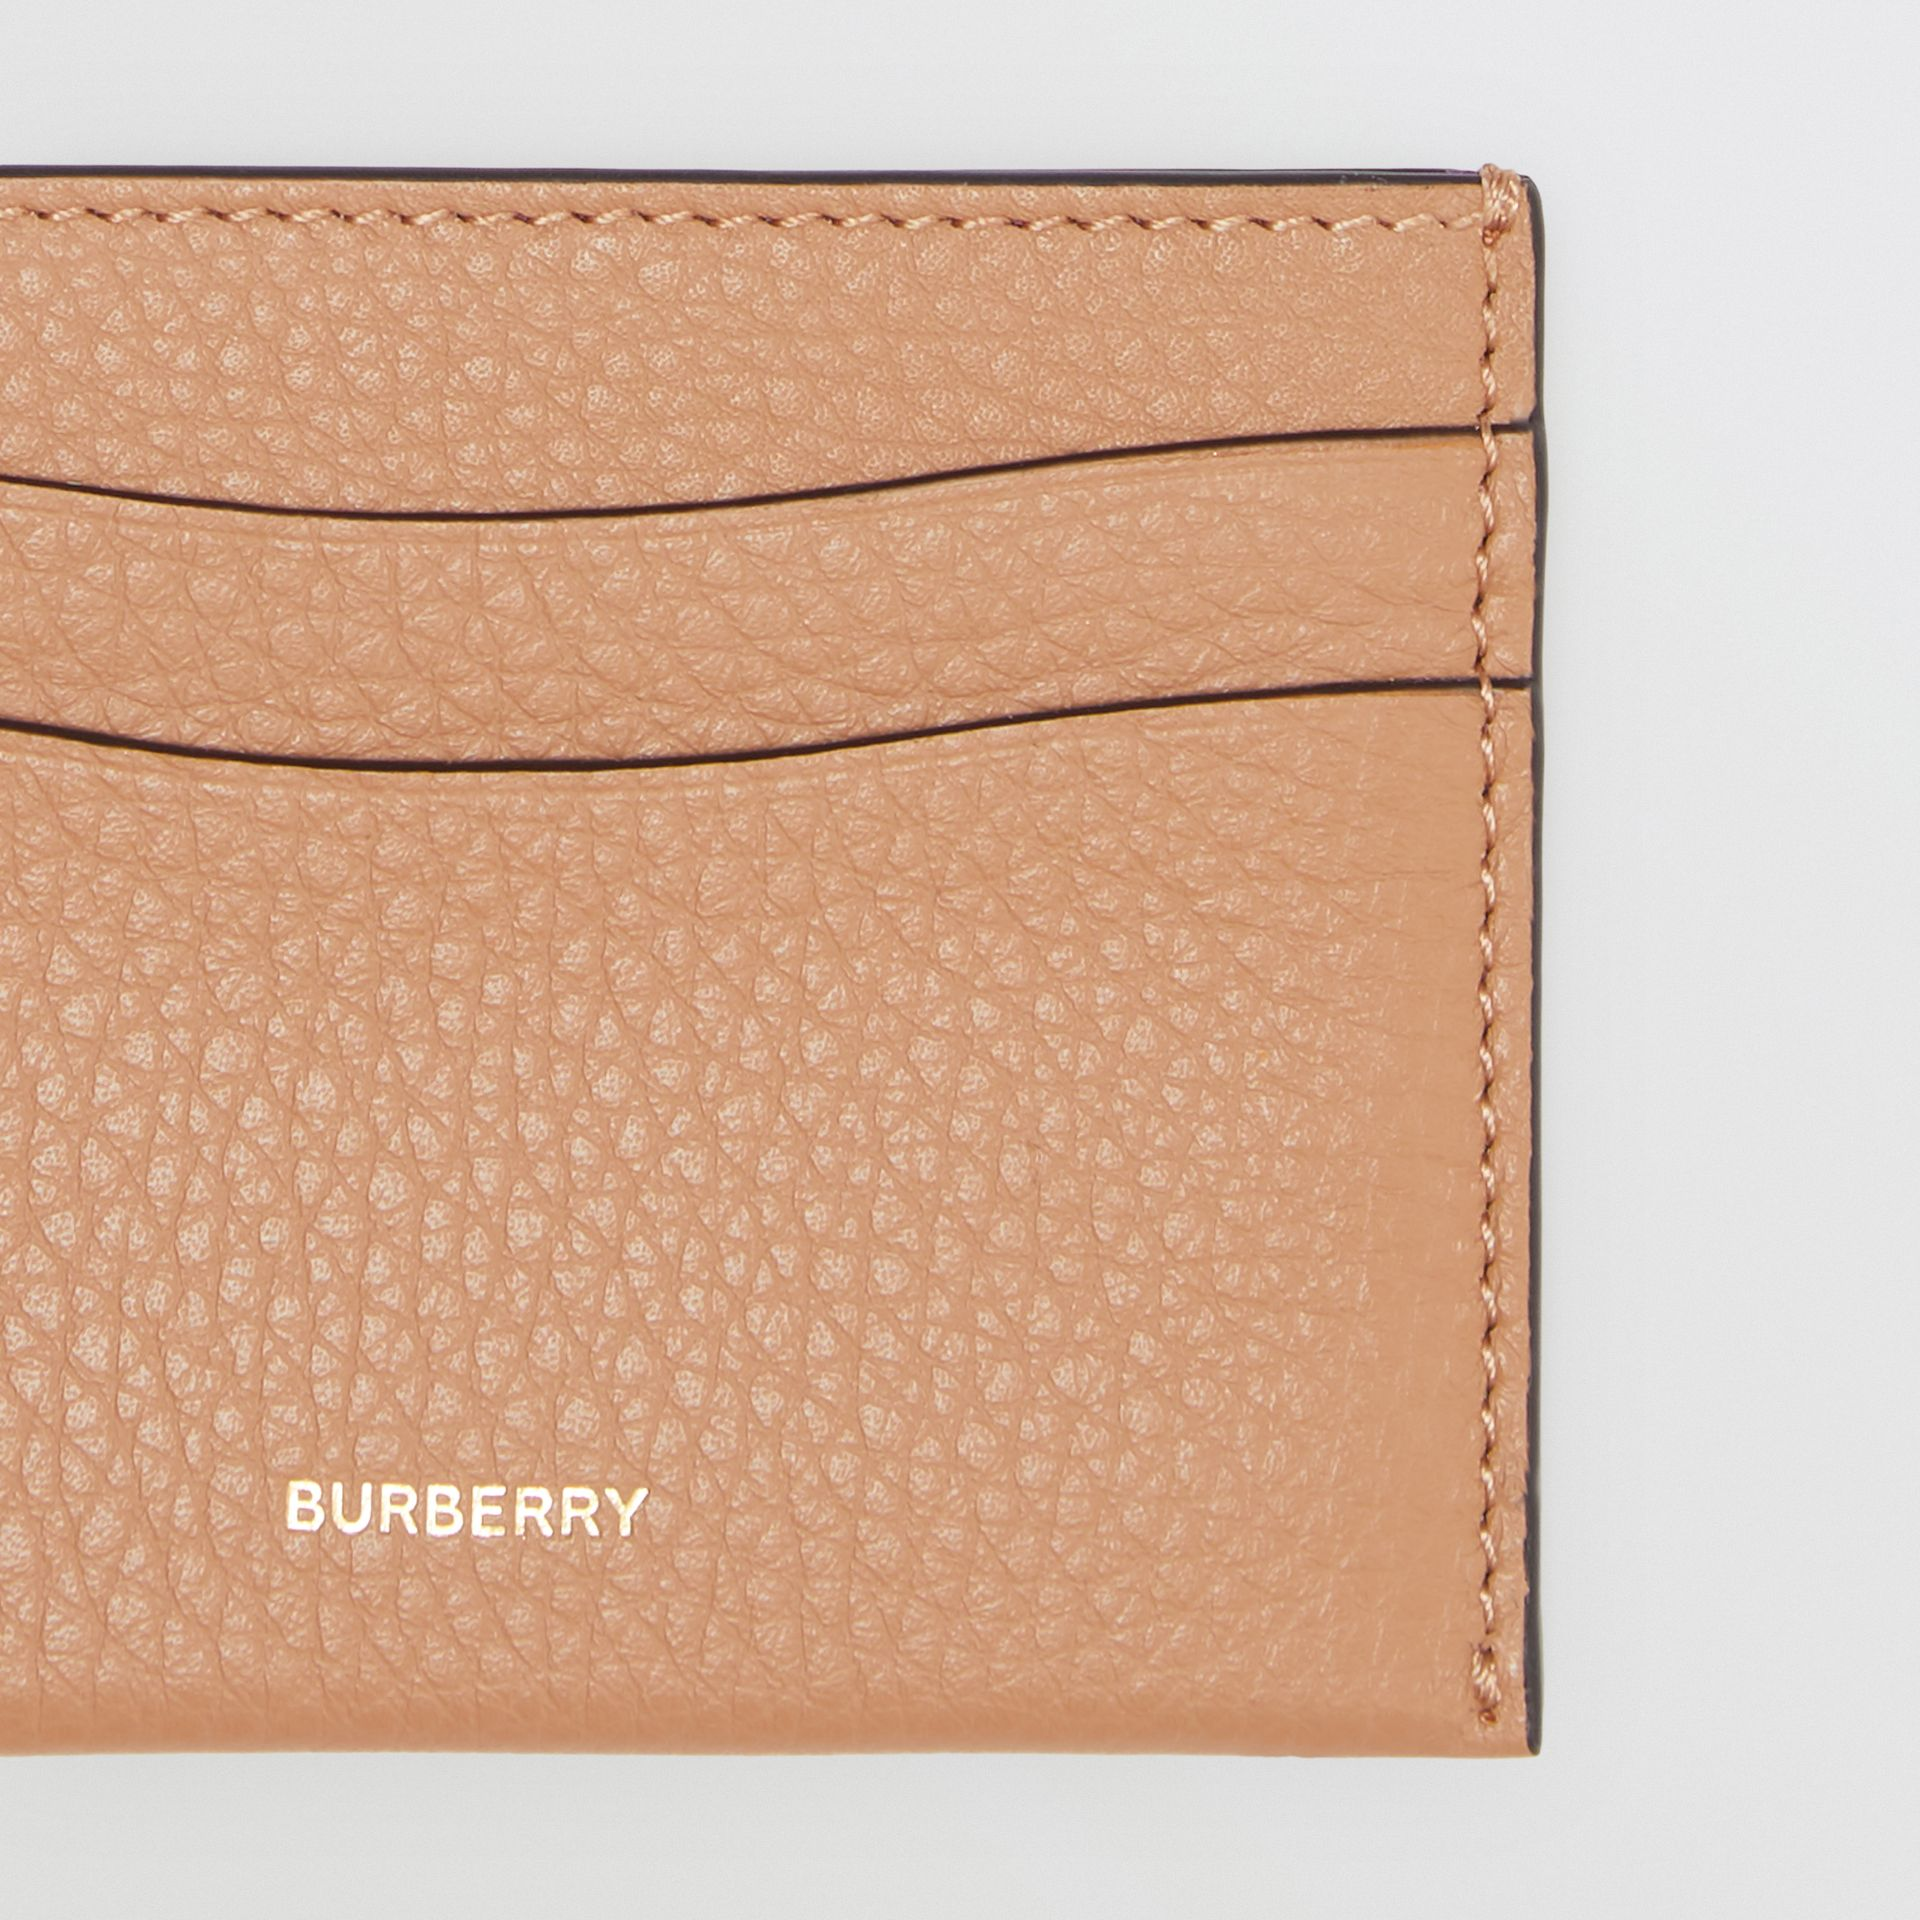 Grainy Logo Leather Card Case in Light Camel - Women | Burberry - gallery image 1